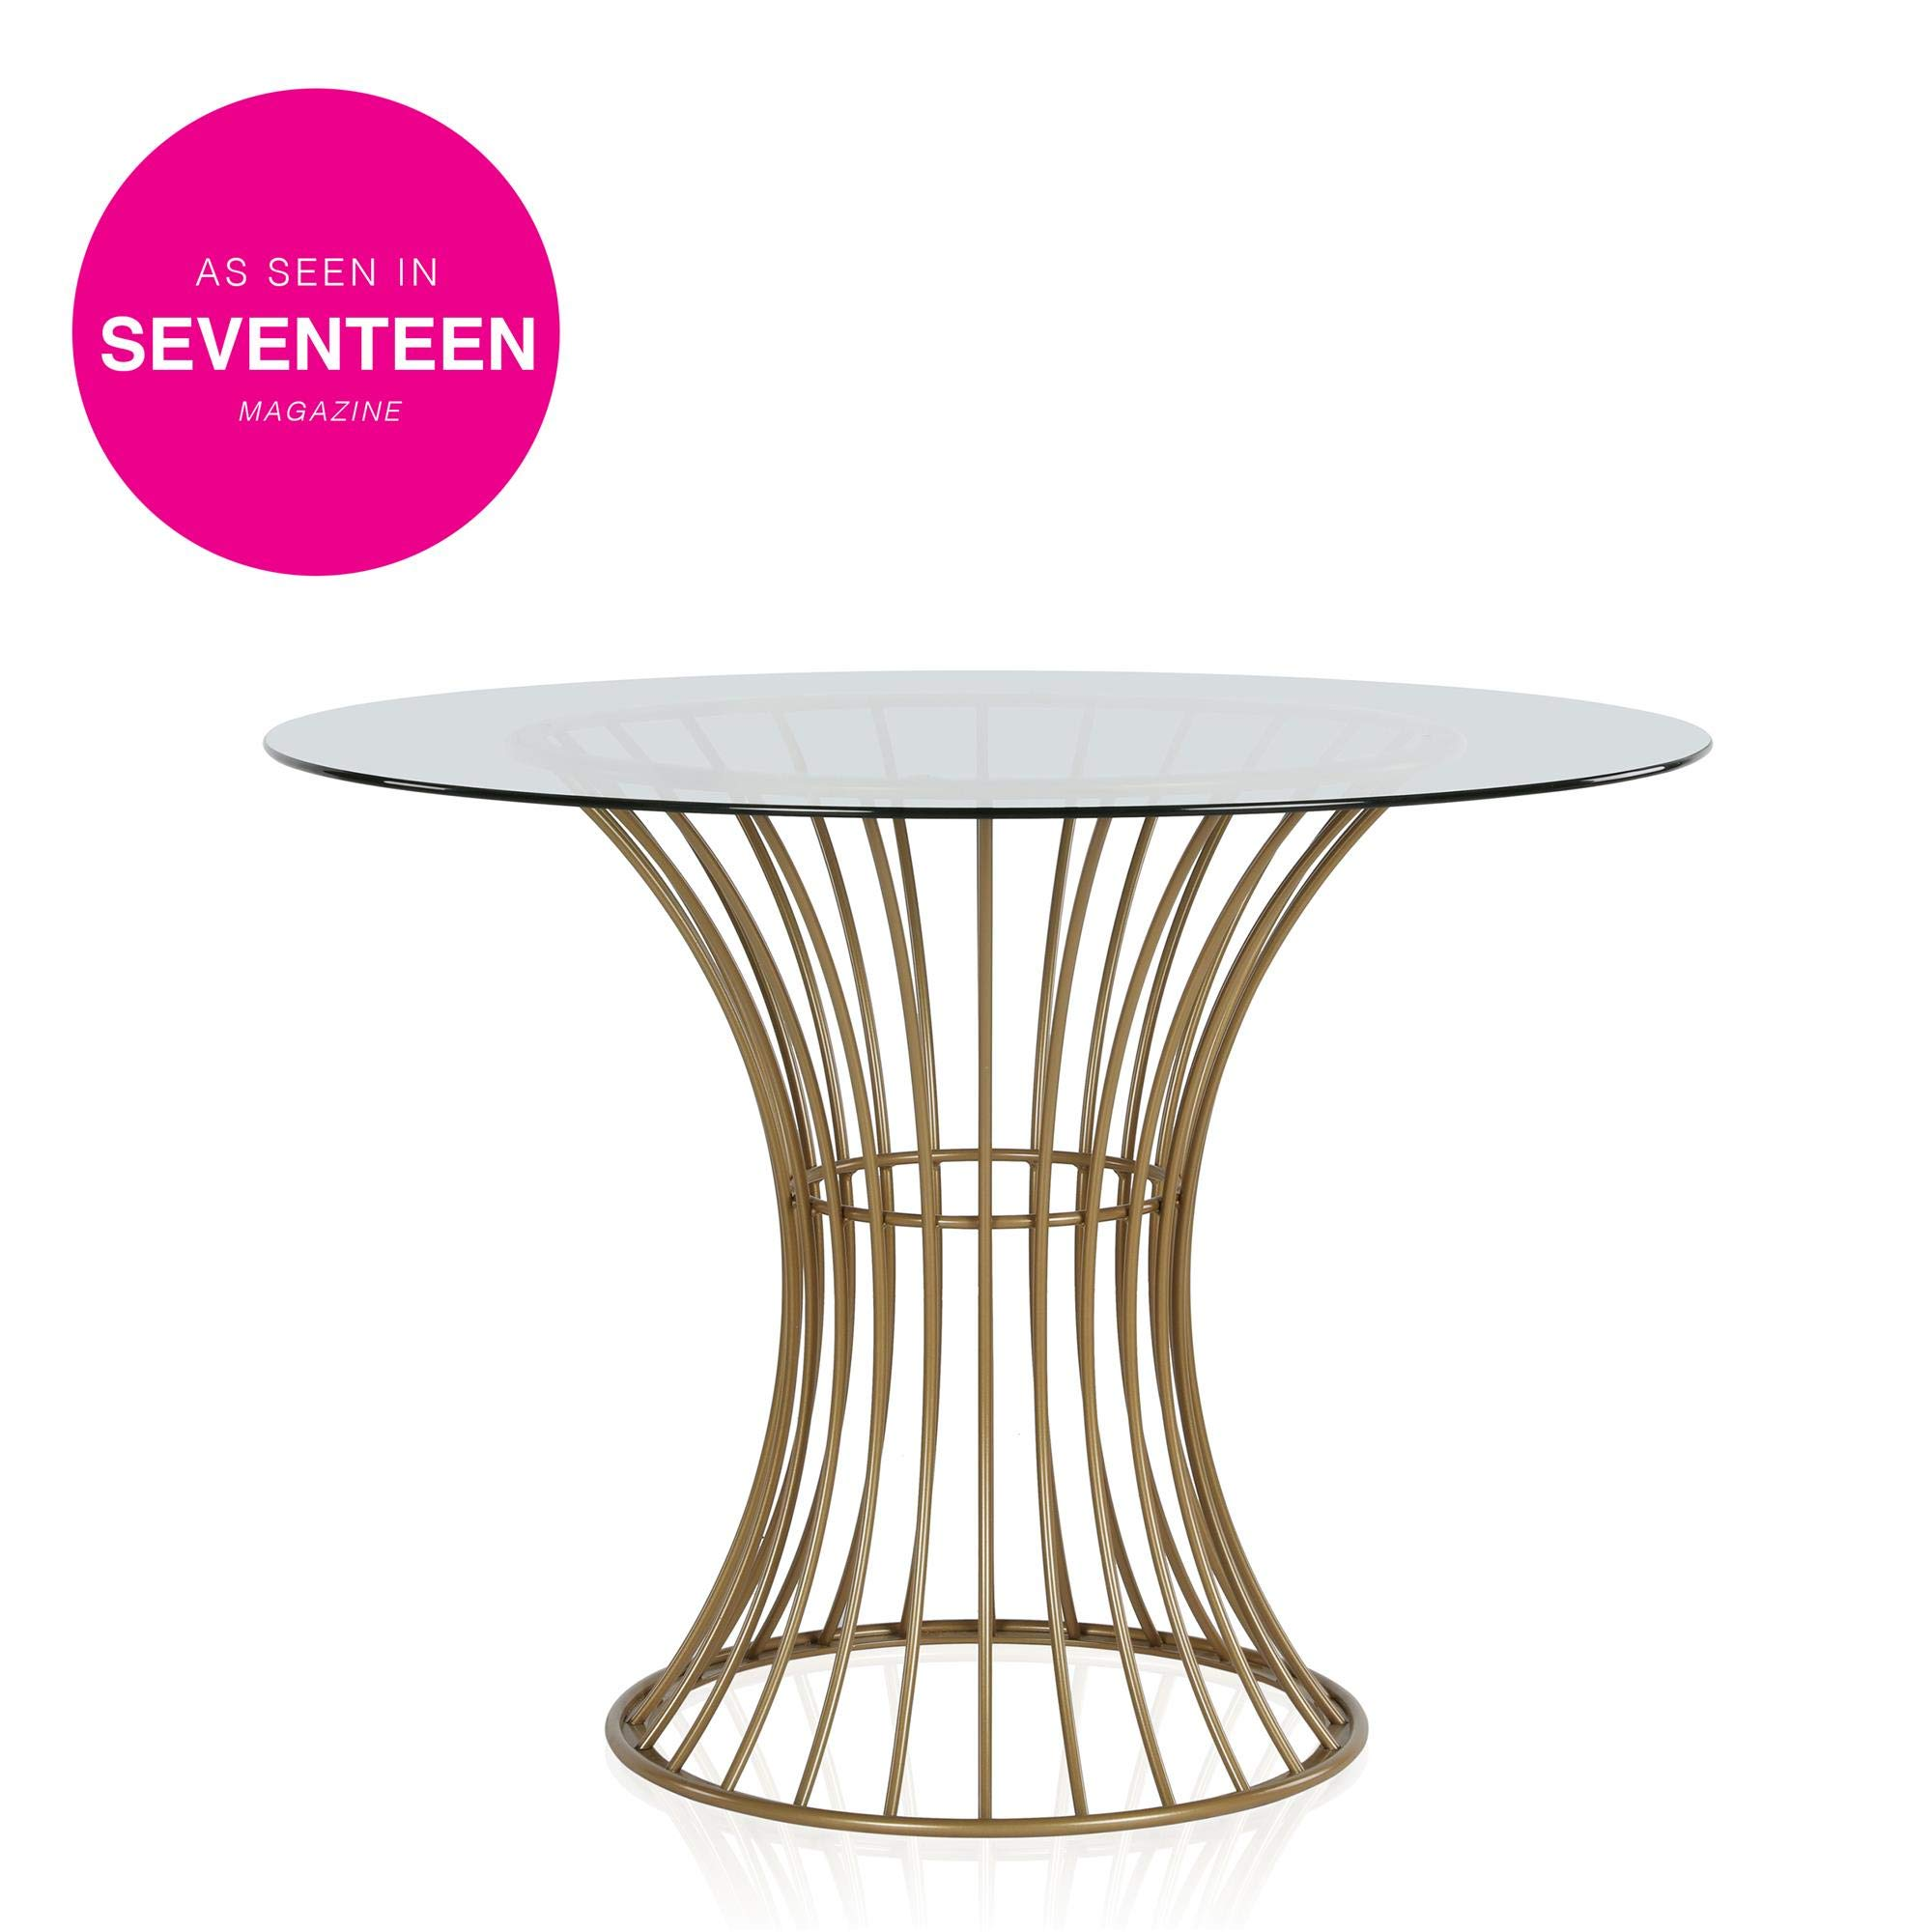 CosmoLiving Westwood Modern Clear Tempered Glass Round Top Dining Table with Hourglass Gold Base - Brass by CosmoLiving by Cosmopolitan (Image #4)